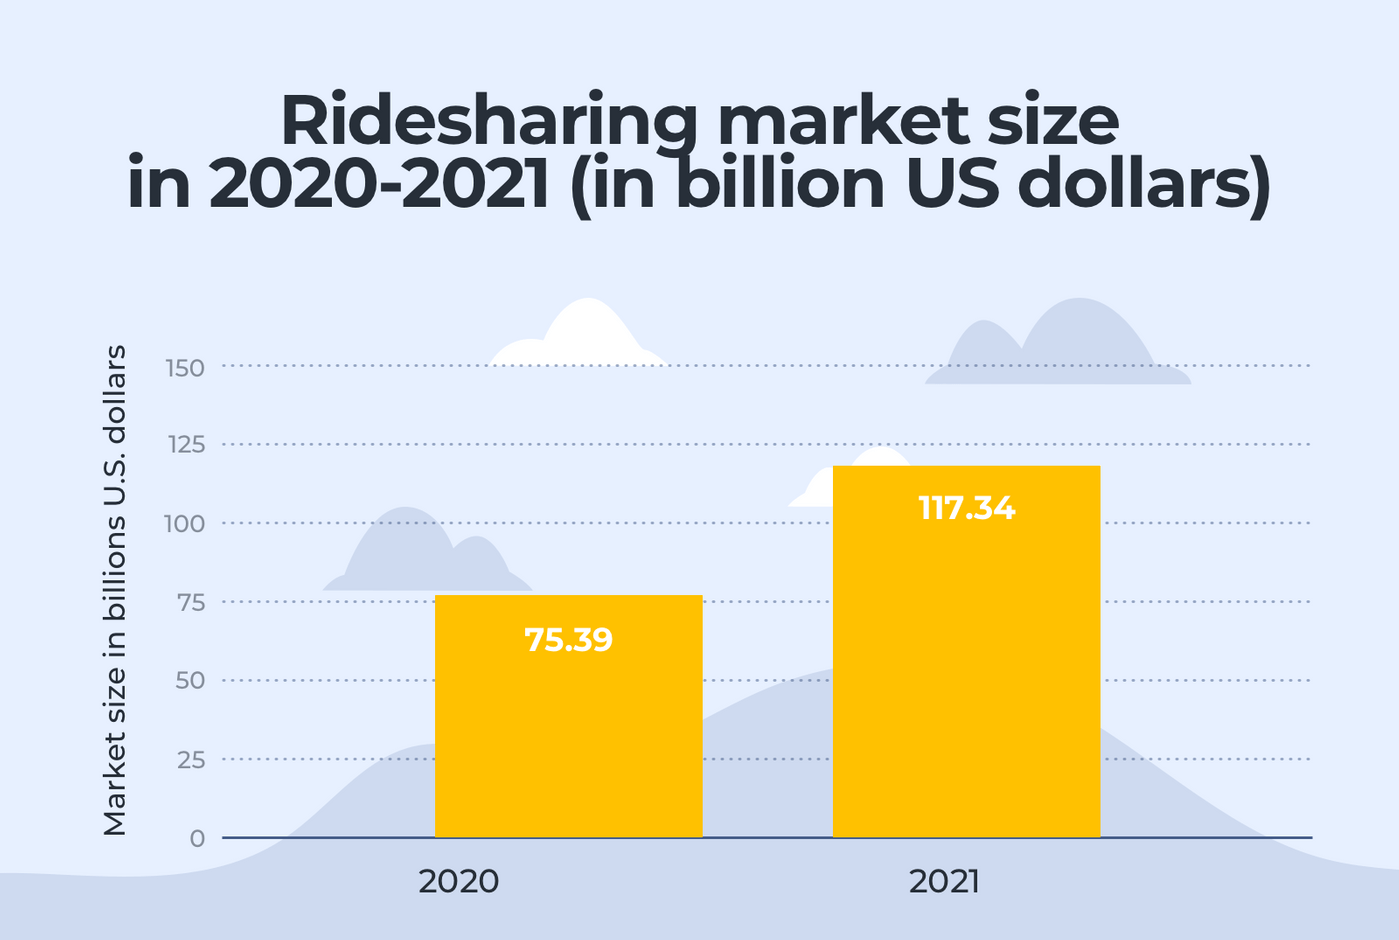 The size of ridesharing market in 2020-2021